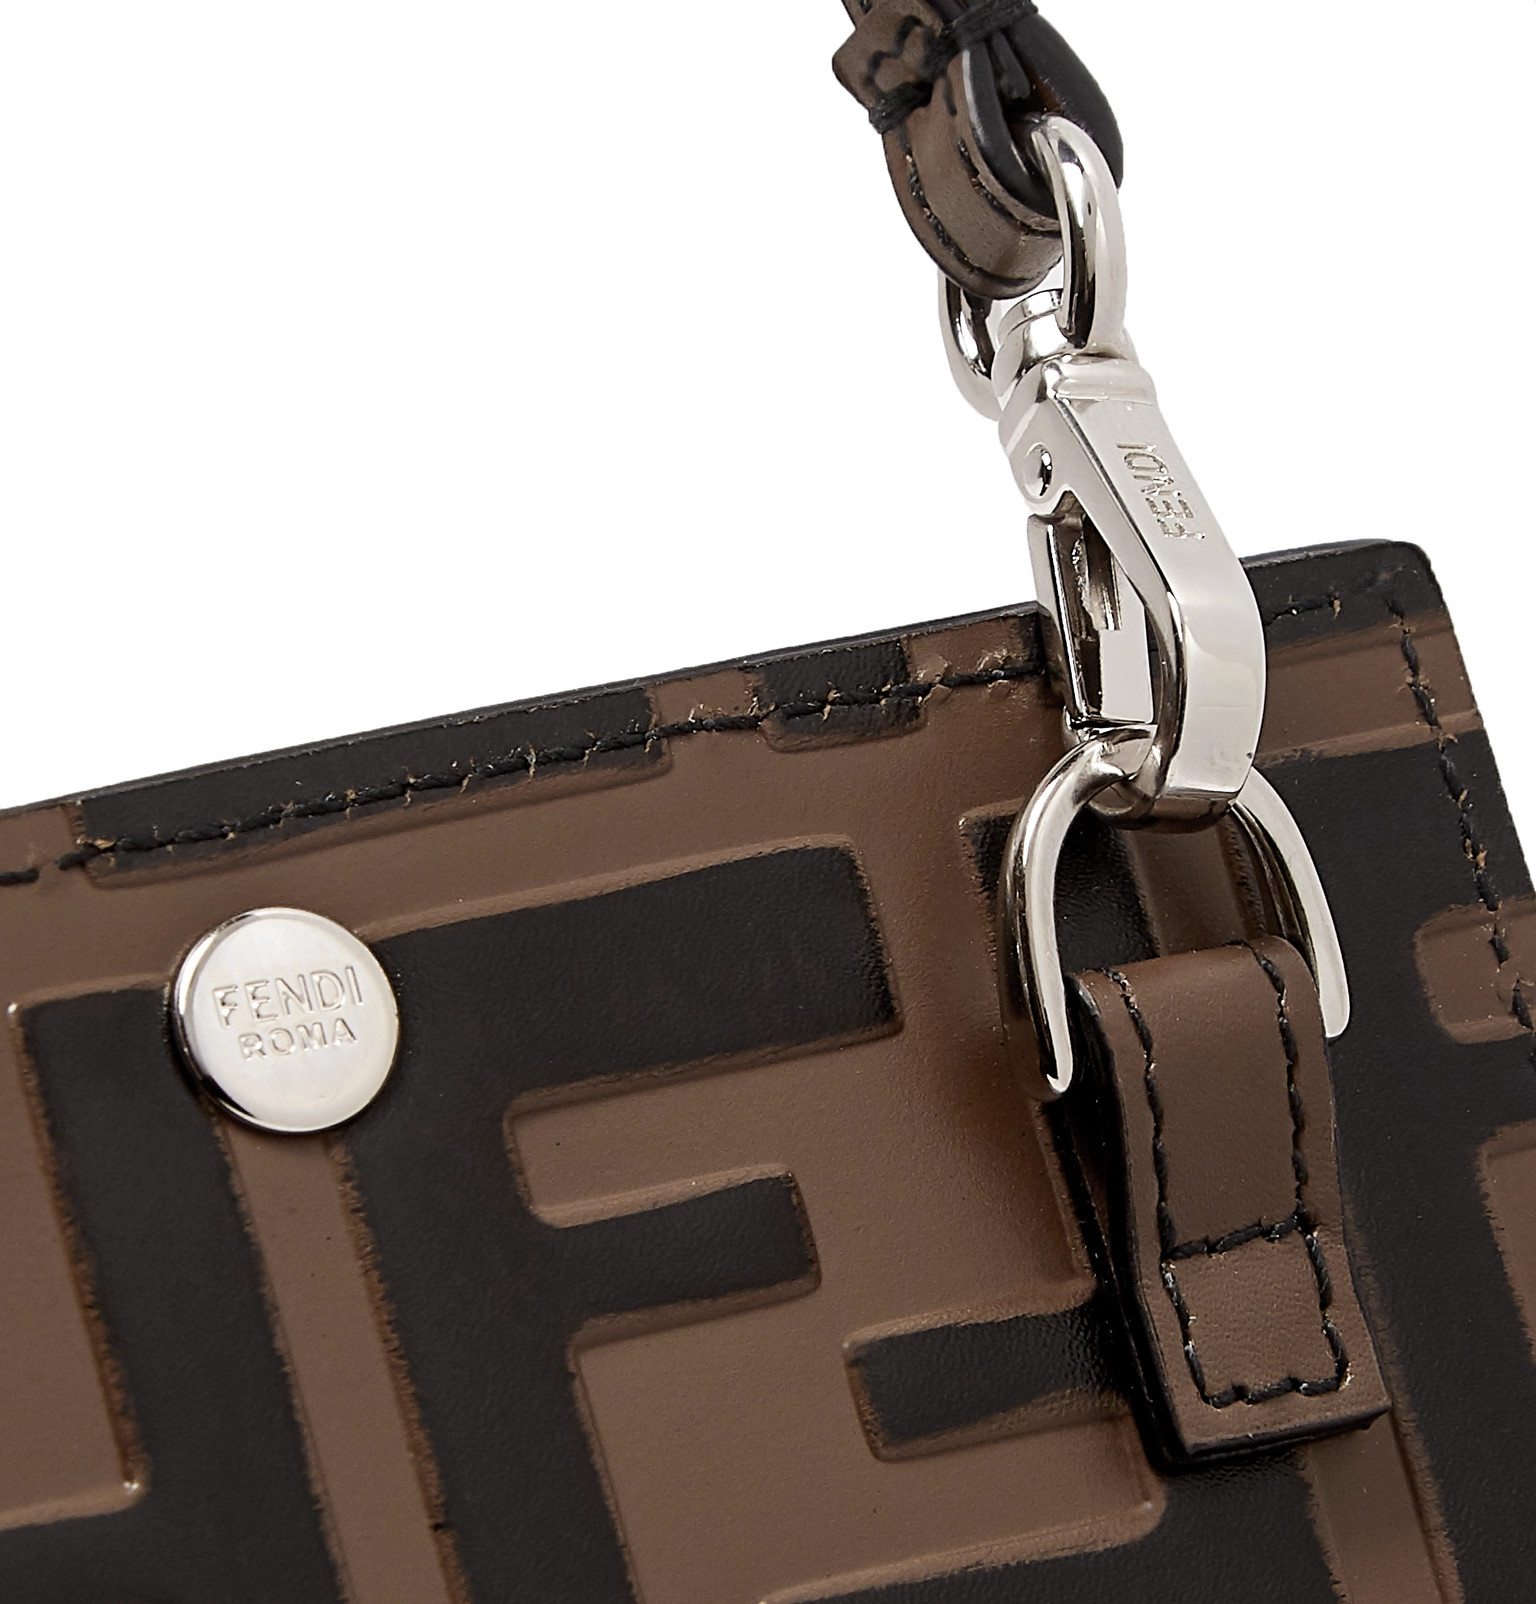 e7c1872ec28d Fendi - Logo-Debossed Leather iPhone X Lanyard Case